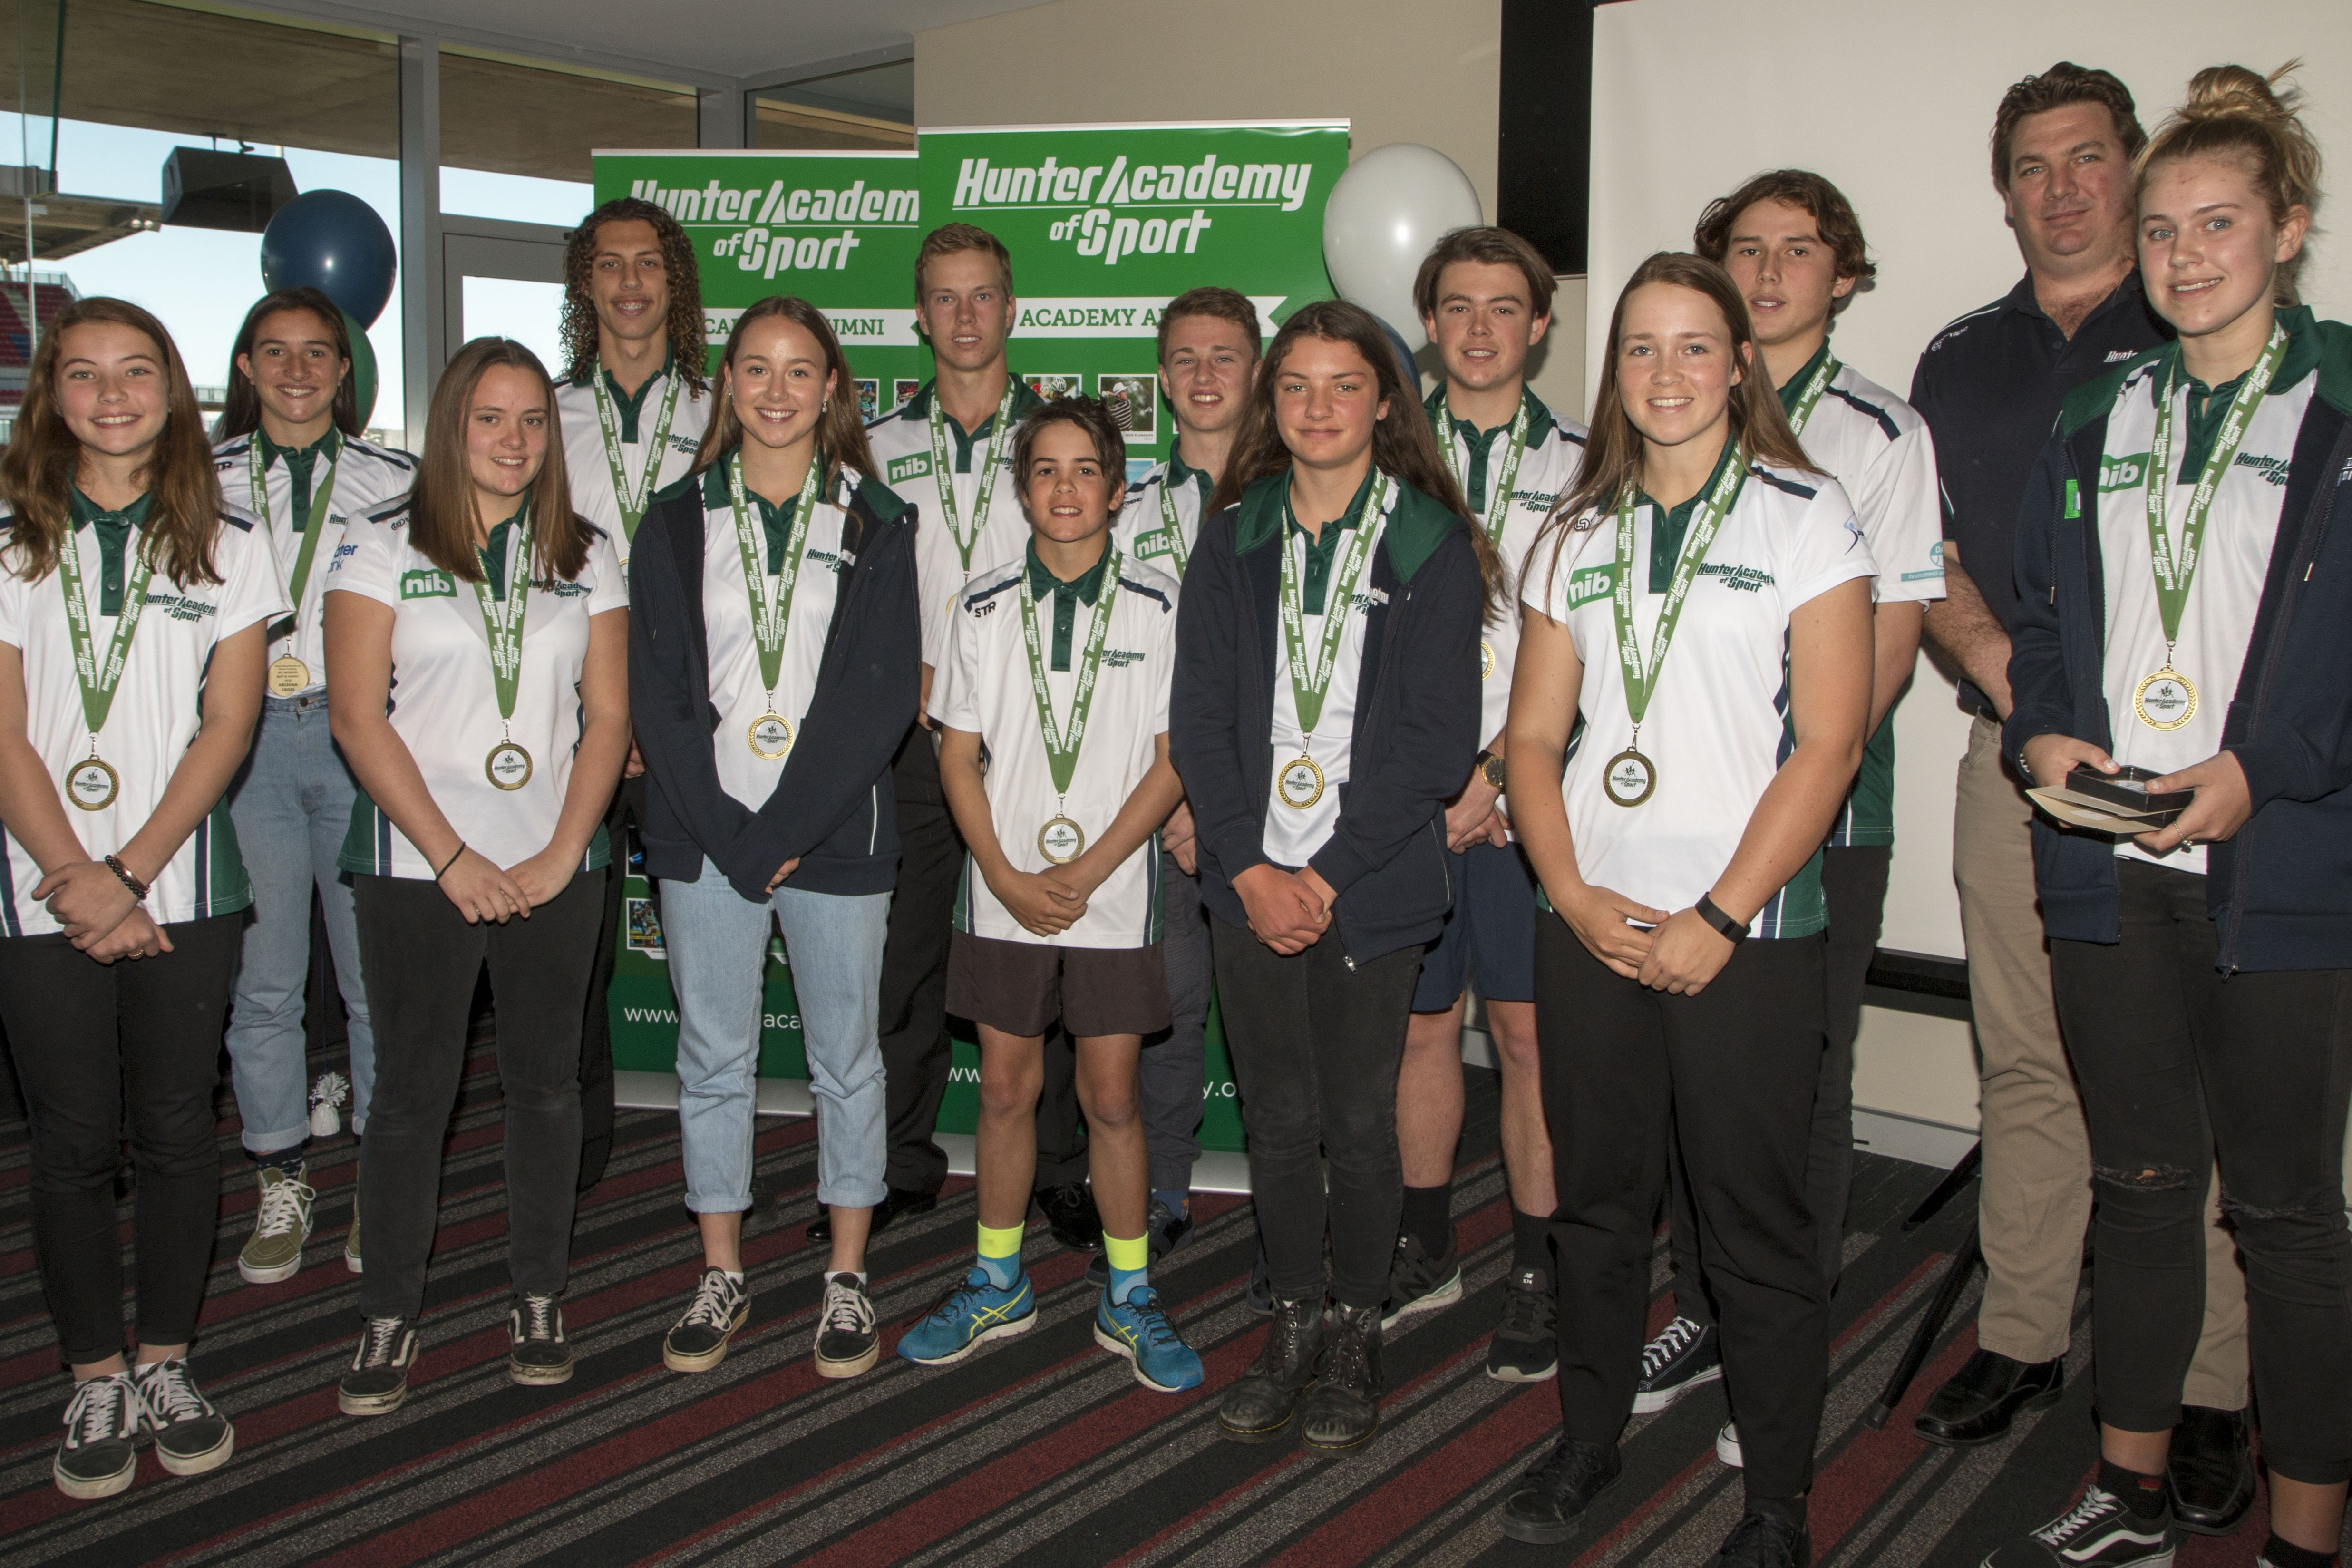 Twenty-one Hunter athletes have been recognised for their talent and dedication at the 2018 Hunter Academy of Sport Awards Ceremony held at McDonald Jones Stadium on Sunday, 16th September 2018.